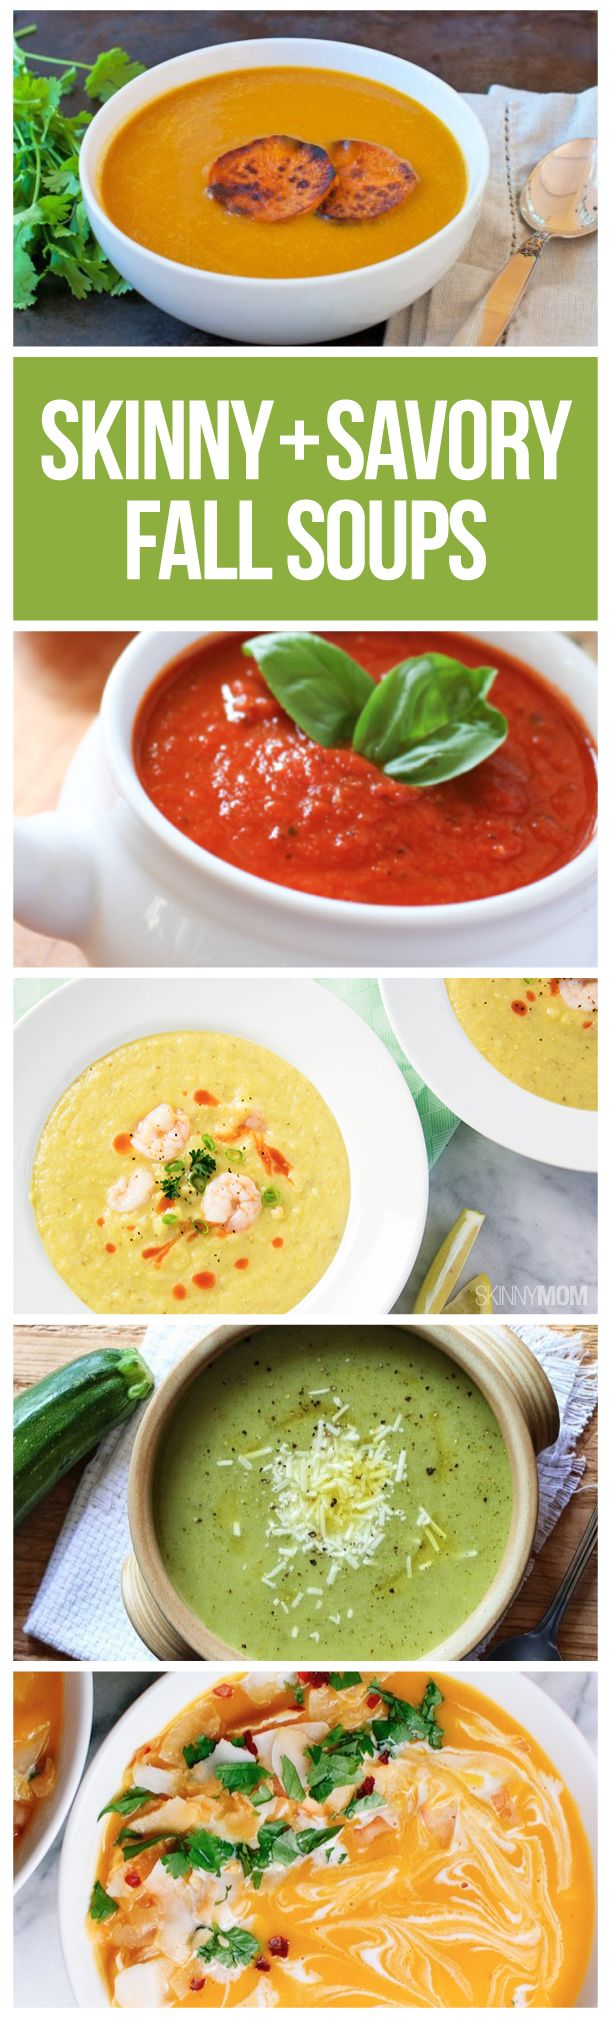 Healthy and savory soups for busy weeknights.